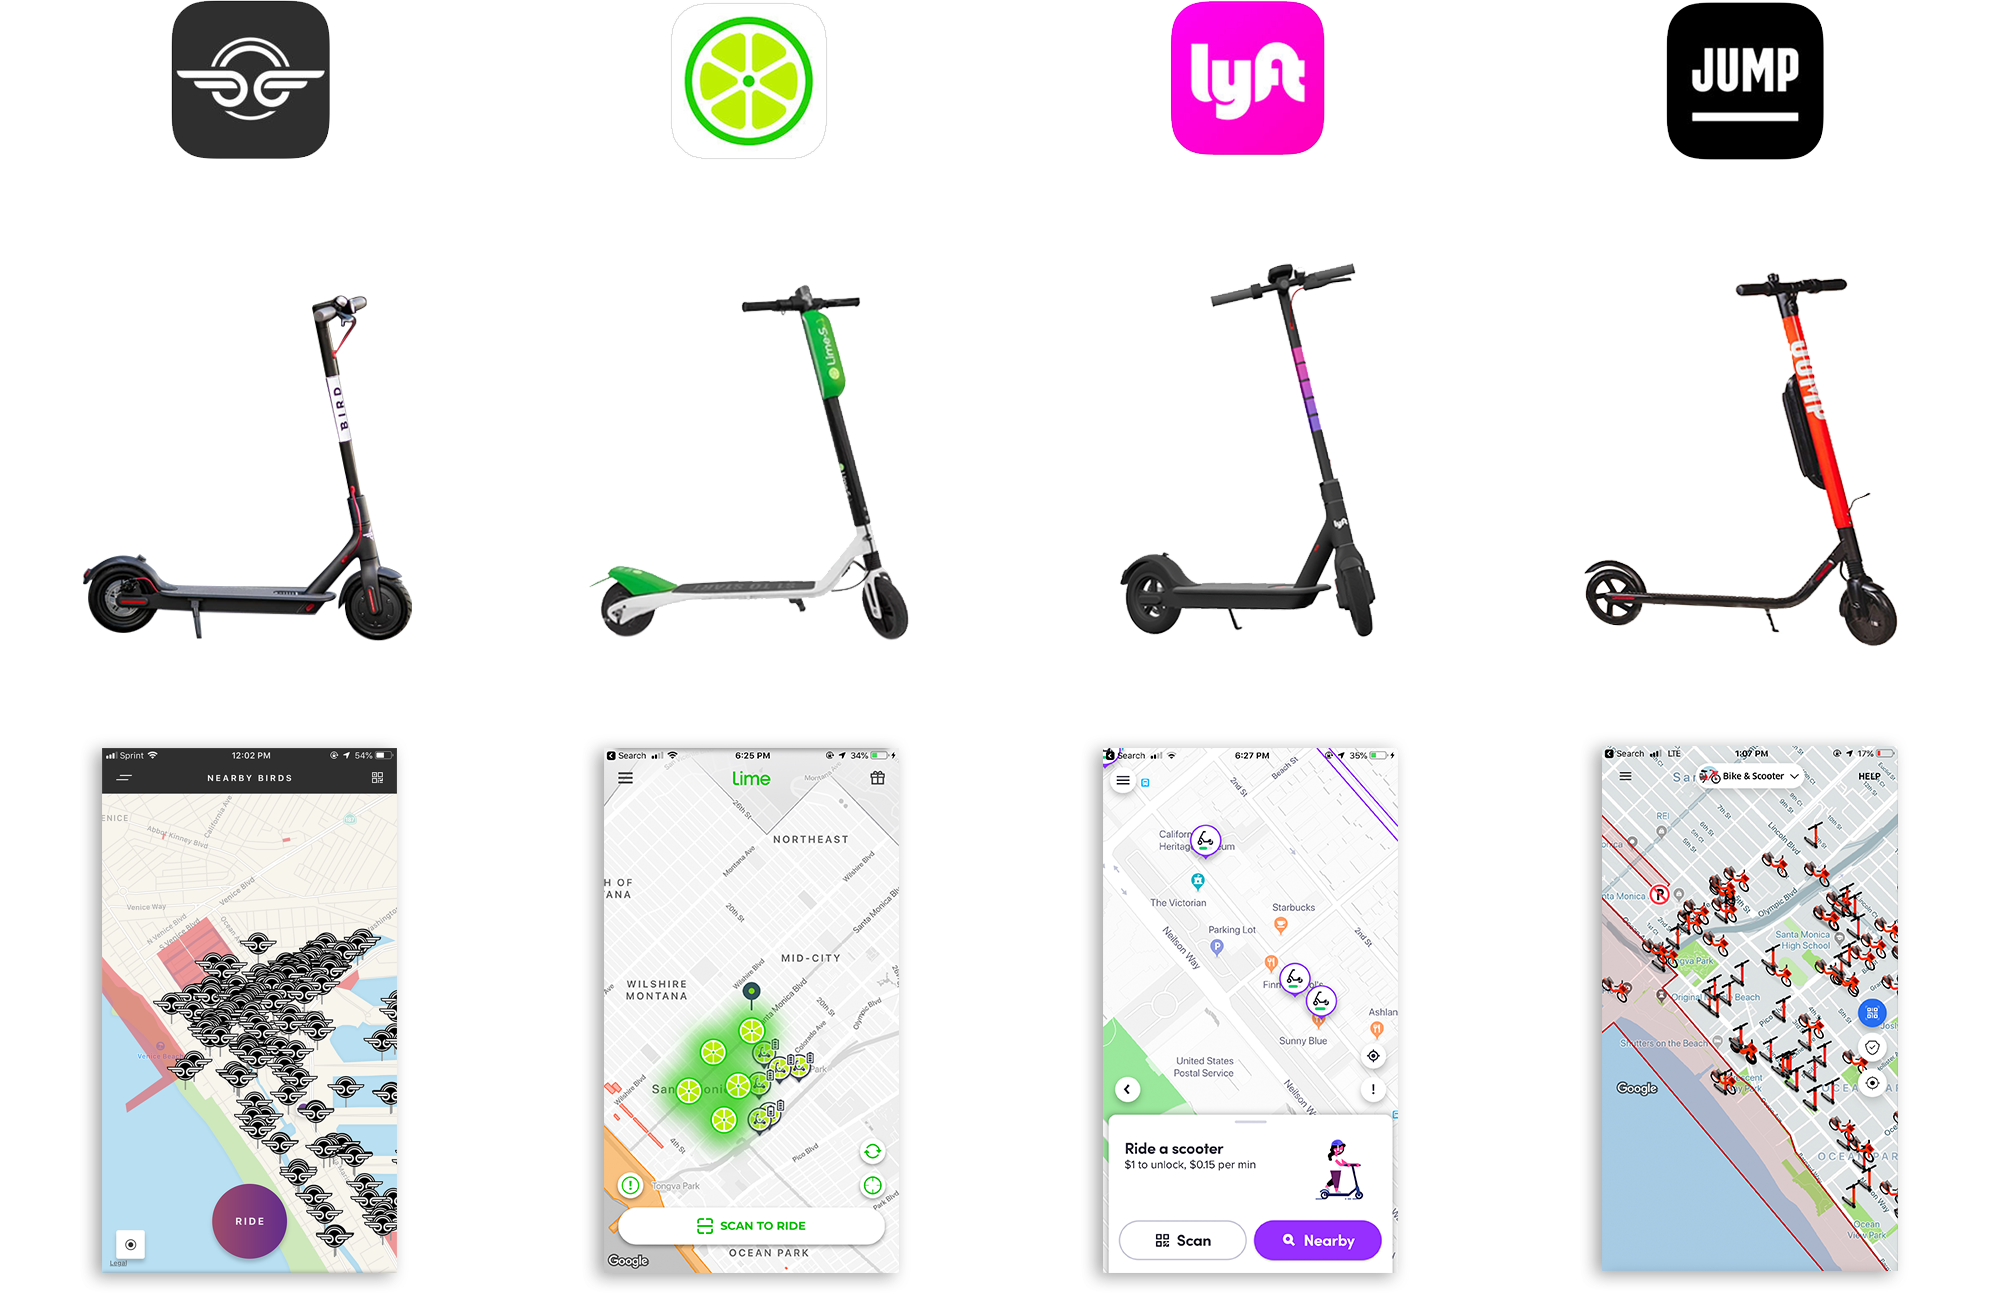 scooter companies that would benefit from ERP system.